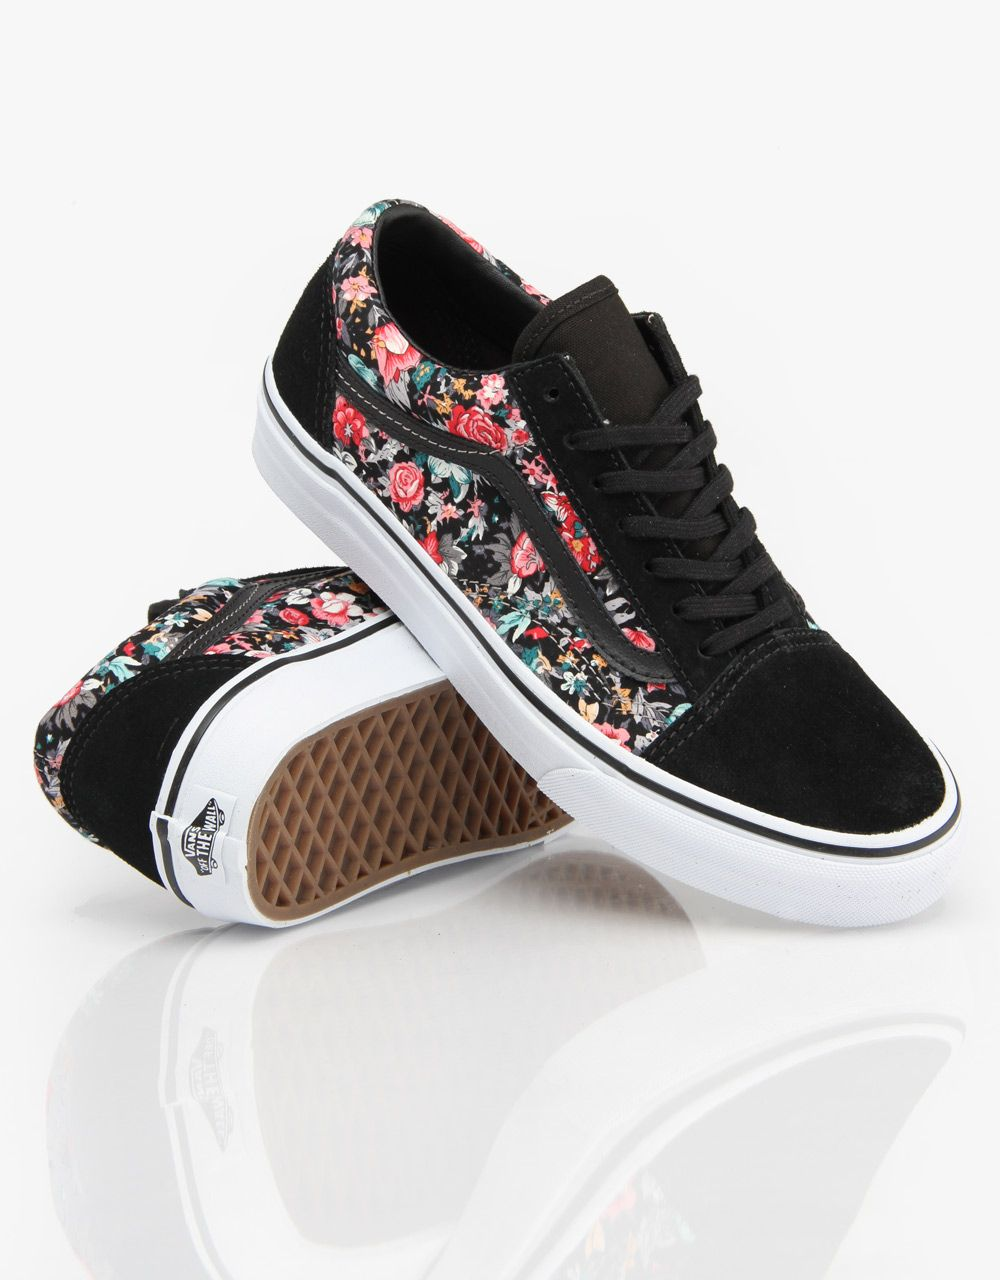 fed5dcc0a44 Vans Old Skool Girls Skate Shoes - Multi Floral Black True White -  RouteOne.co.uk